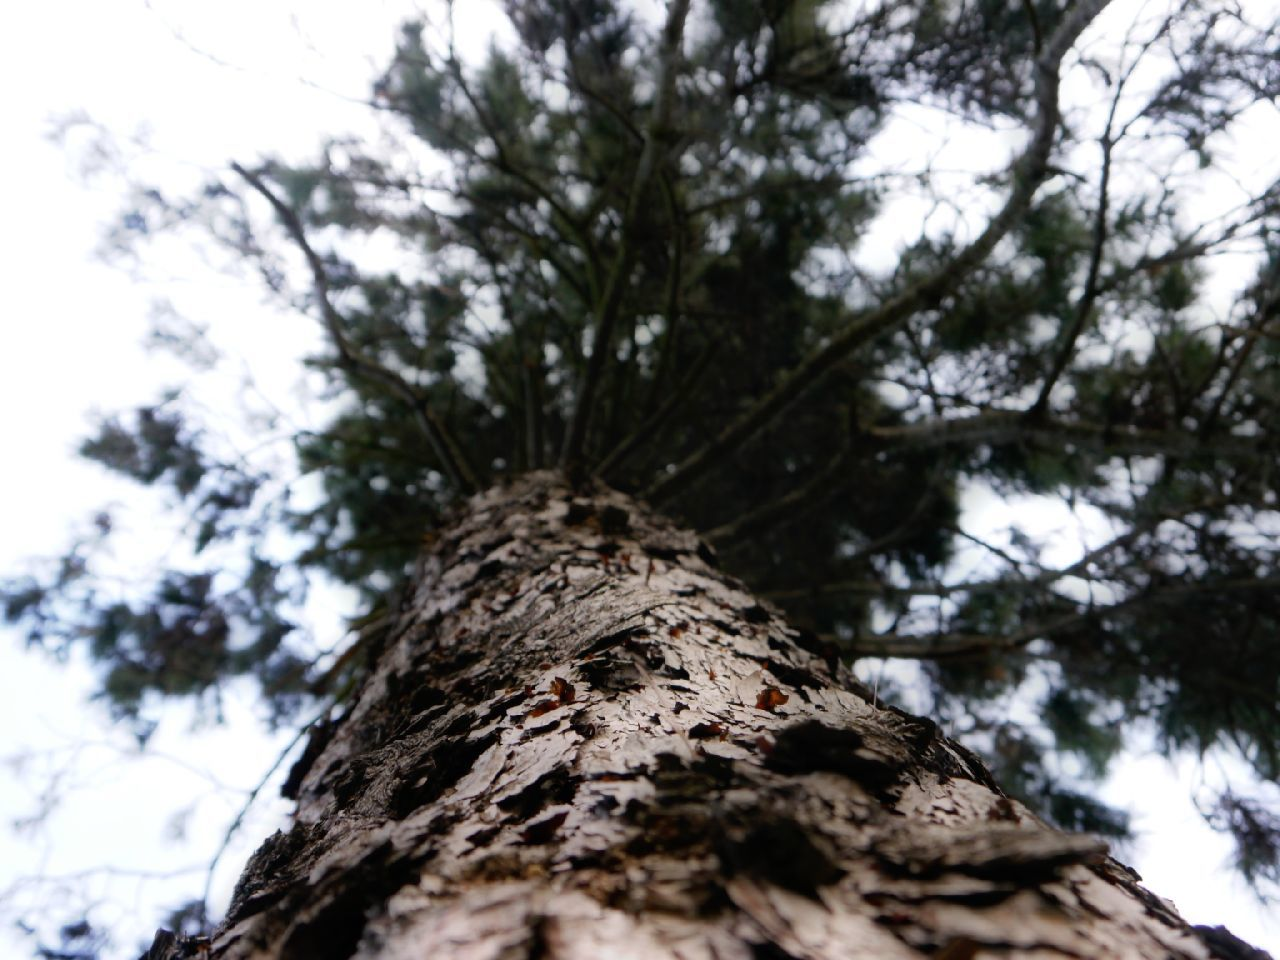 tree trunk, low angle view, tree, nature, day, growth, outdoors, rough, bark, textured, no people, branch, focus on foreground, forest, beauty in nature, close-up, sky, high